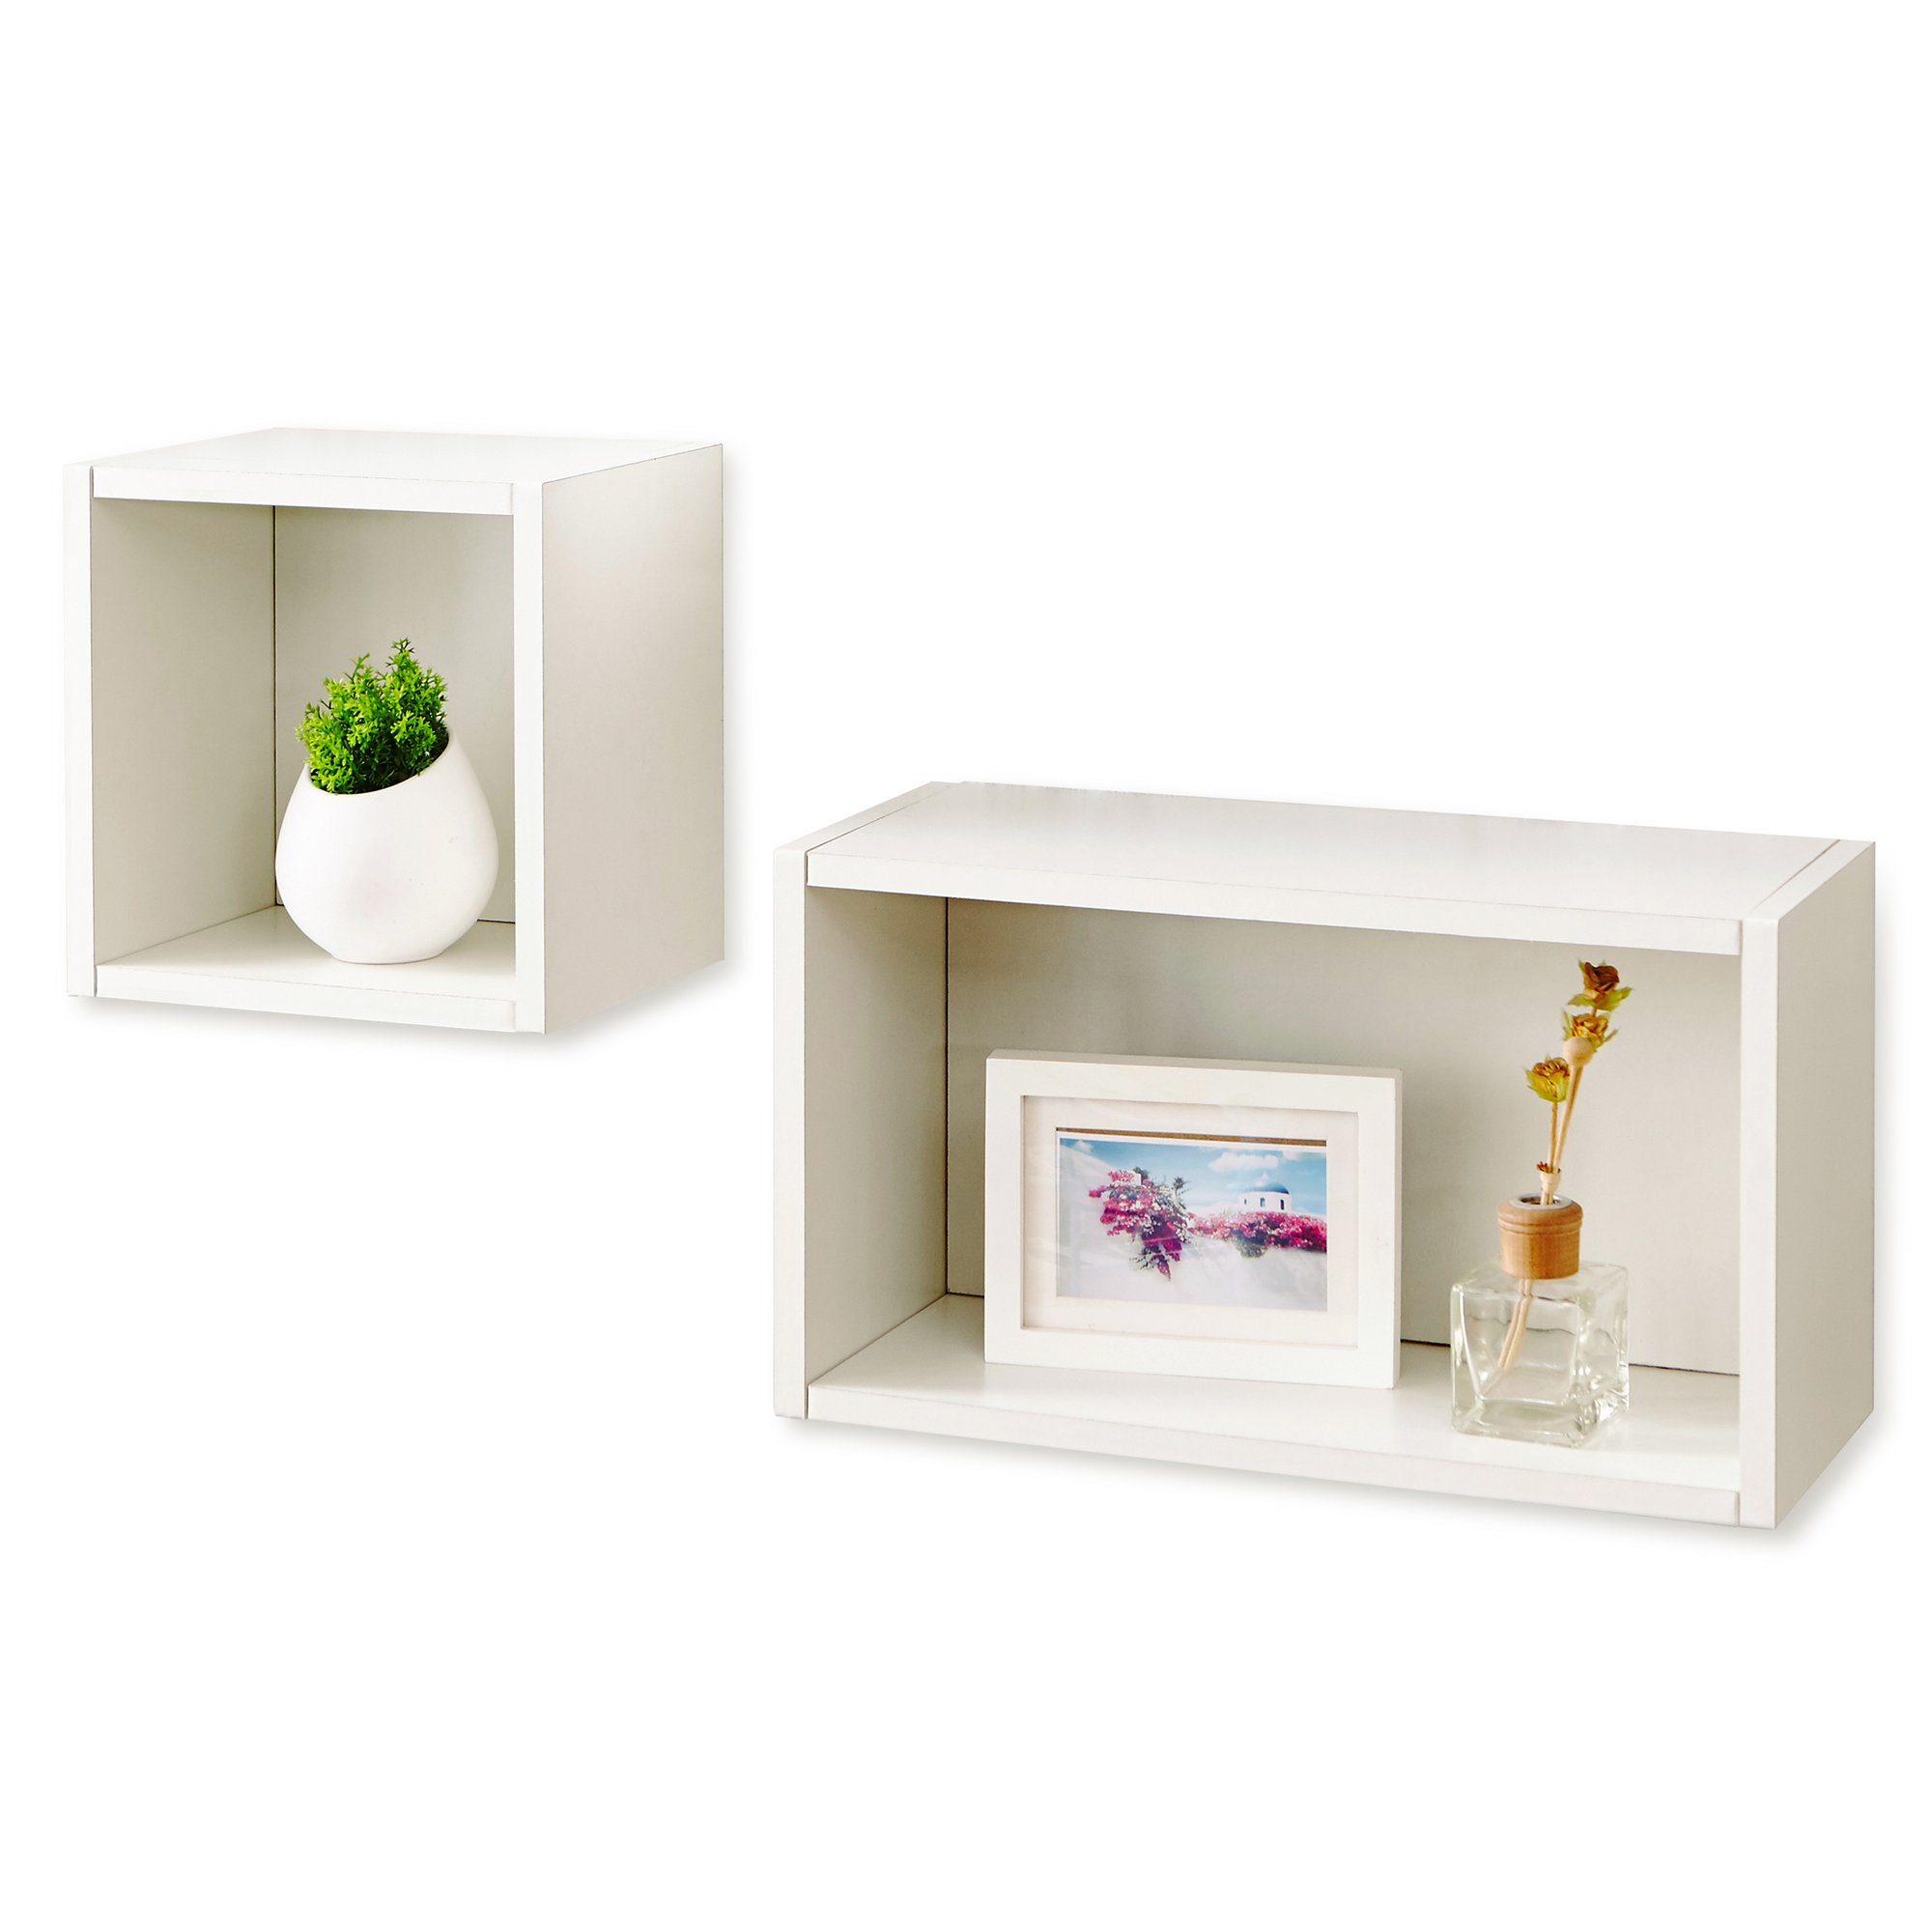 white wall cube rectangle combo and decorative shelf way basics rect floating brackets for island countertop shelves bedroom smoked glass corner heavy duty wood small desk with